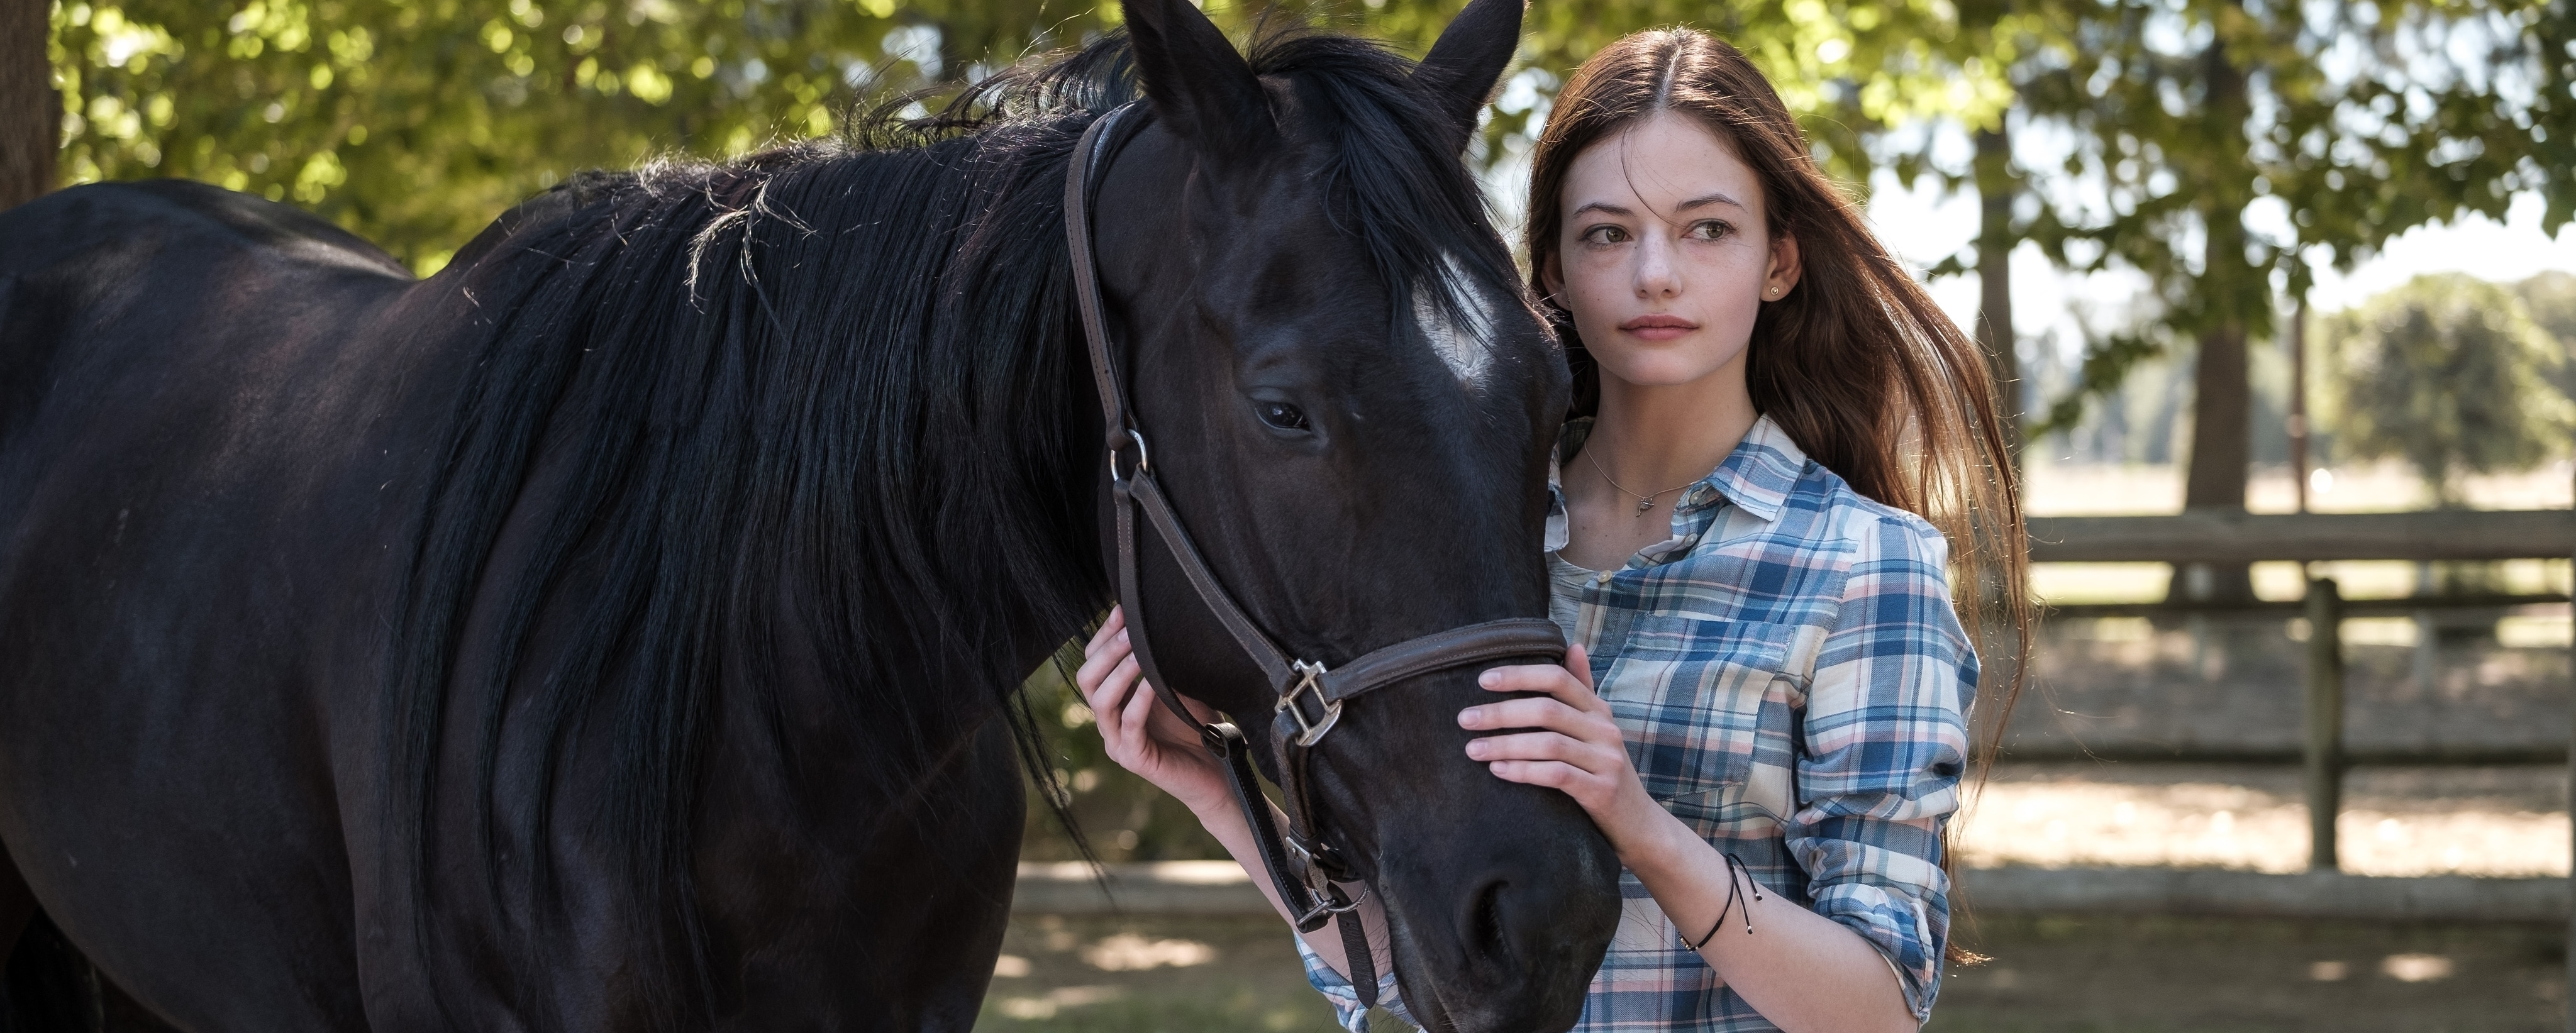 """Black Beauty"" Rides Onto Disney+"